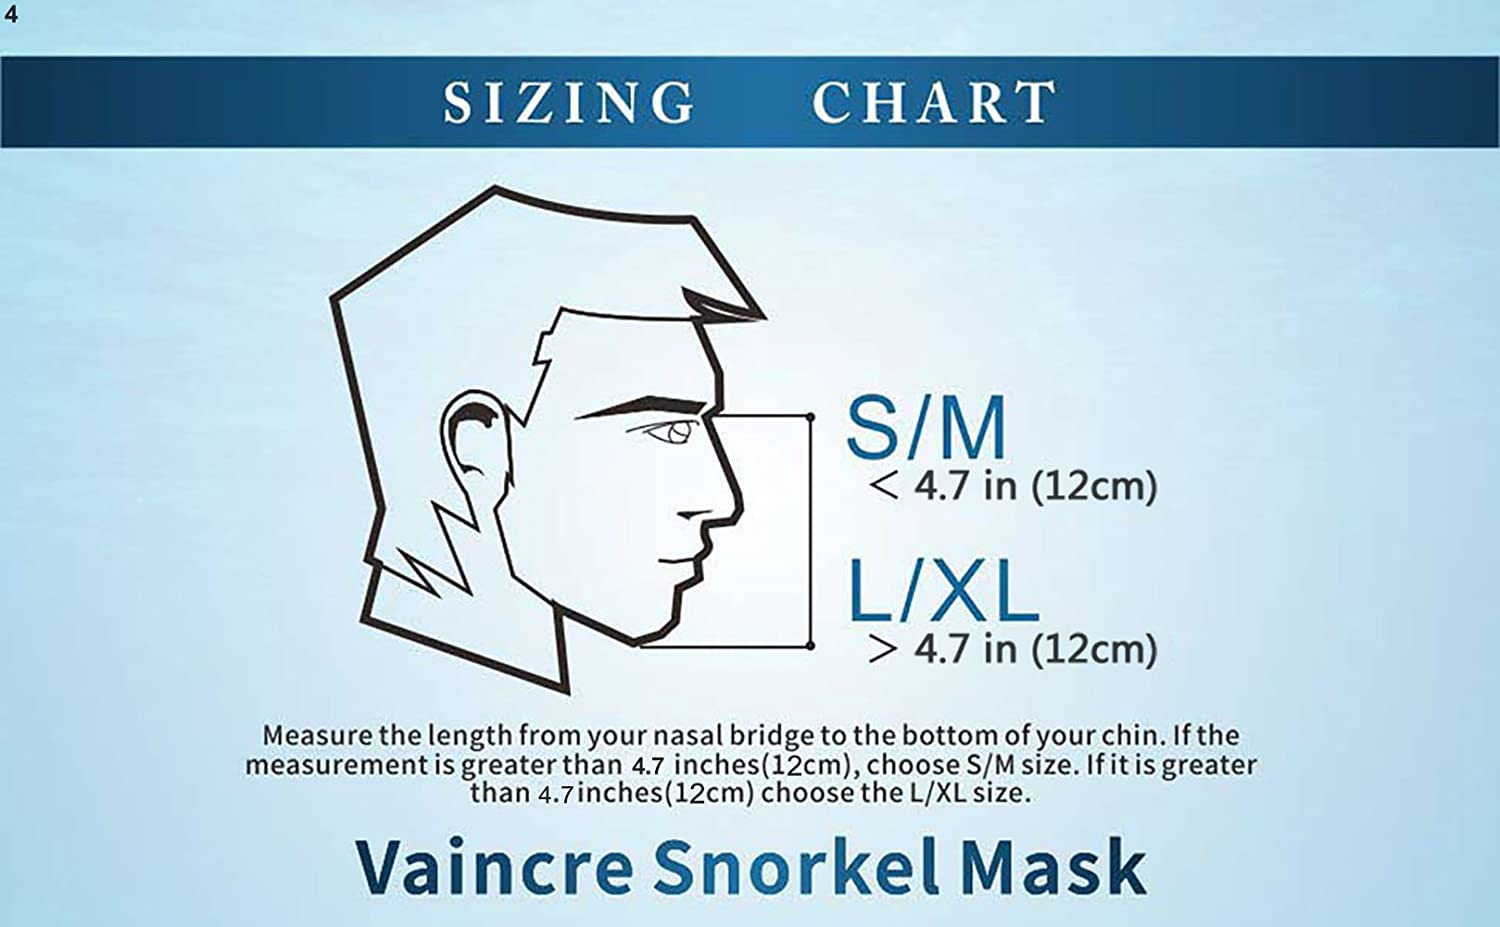 Vaincre 180° Full Face Snorkel Mask with Panoramic View Anti-Fog, Anti-Leak with Adjustable Head Straps with longer Snorkeling Tube Larger Area